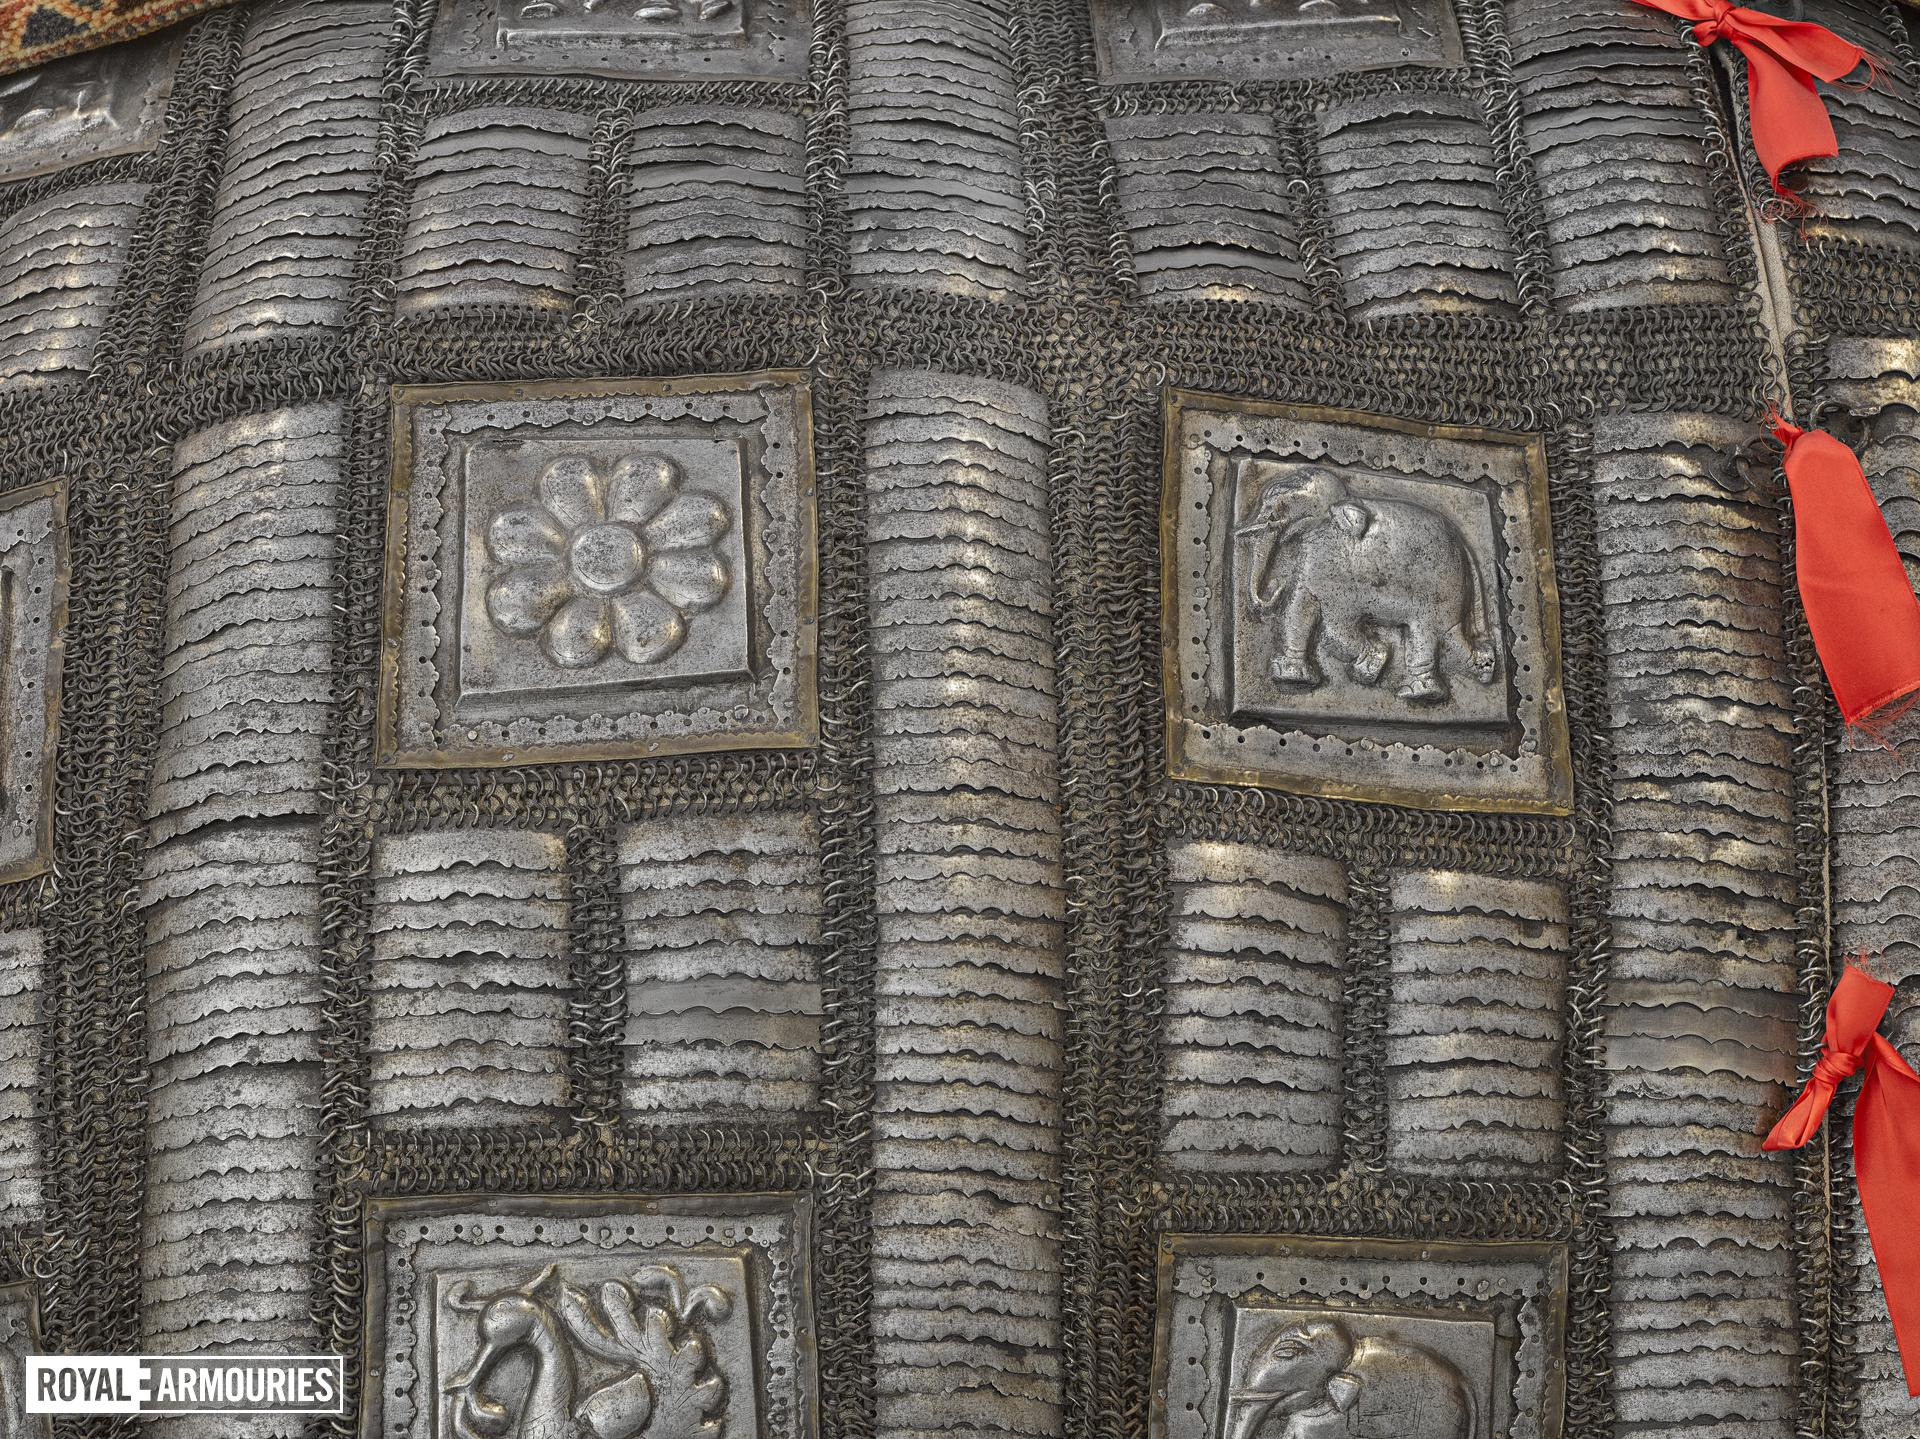 Elephant armour (bargustavan-i-pil), India, about 1600